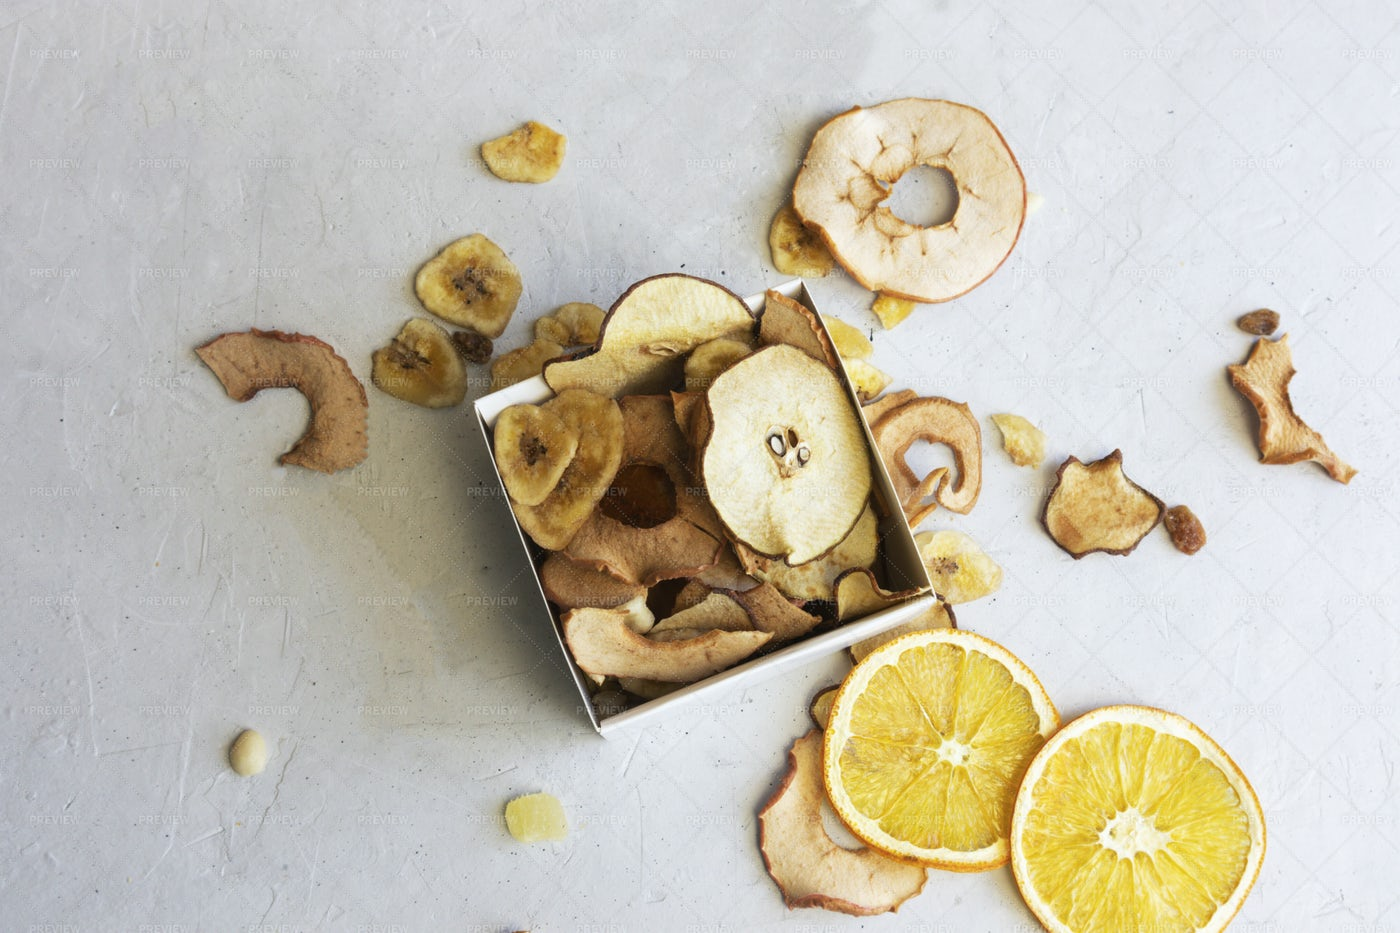 Dried Apples And Oranges Chips: Stock Photos